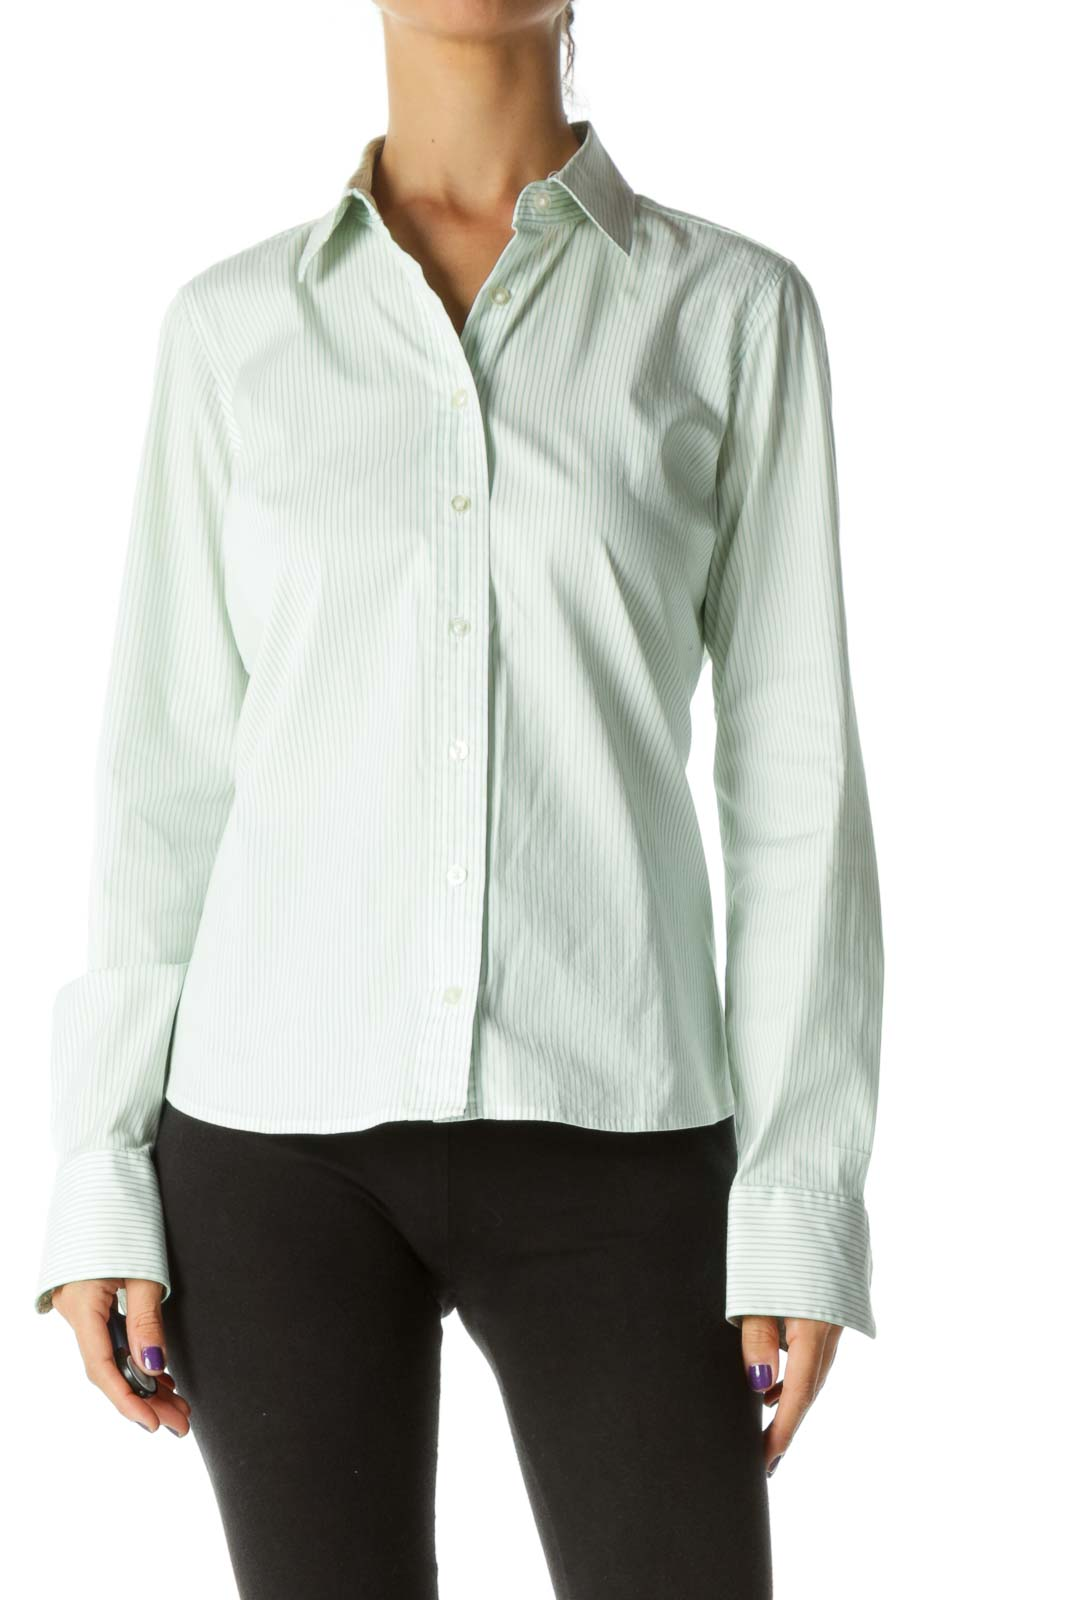 Green White Striped Buttoned Long Sleeve Stretch Shirt